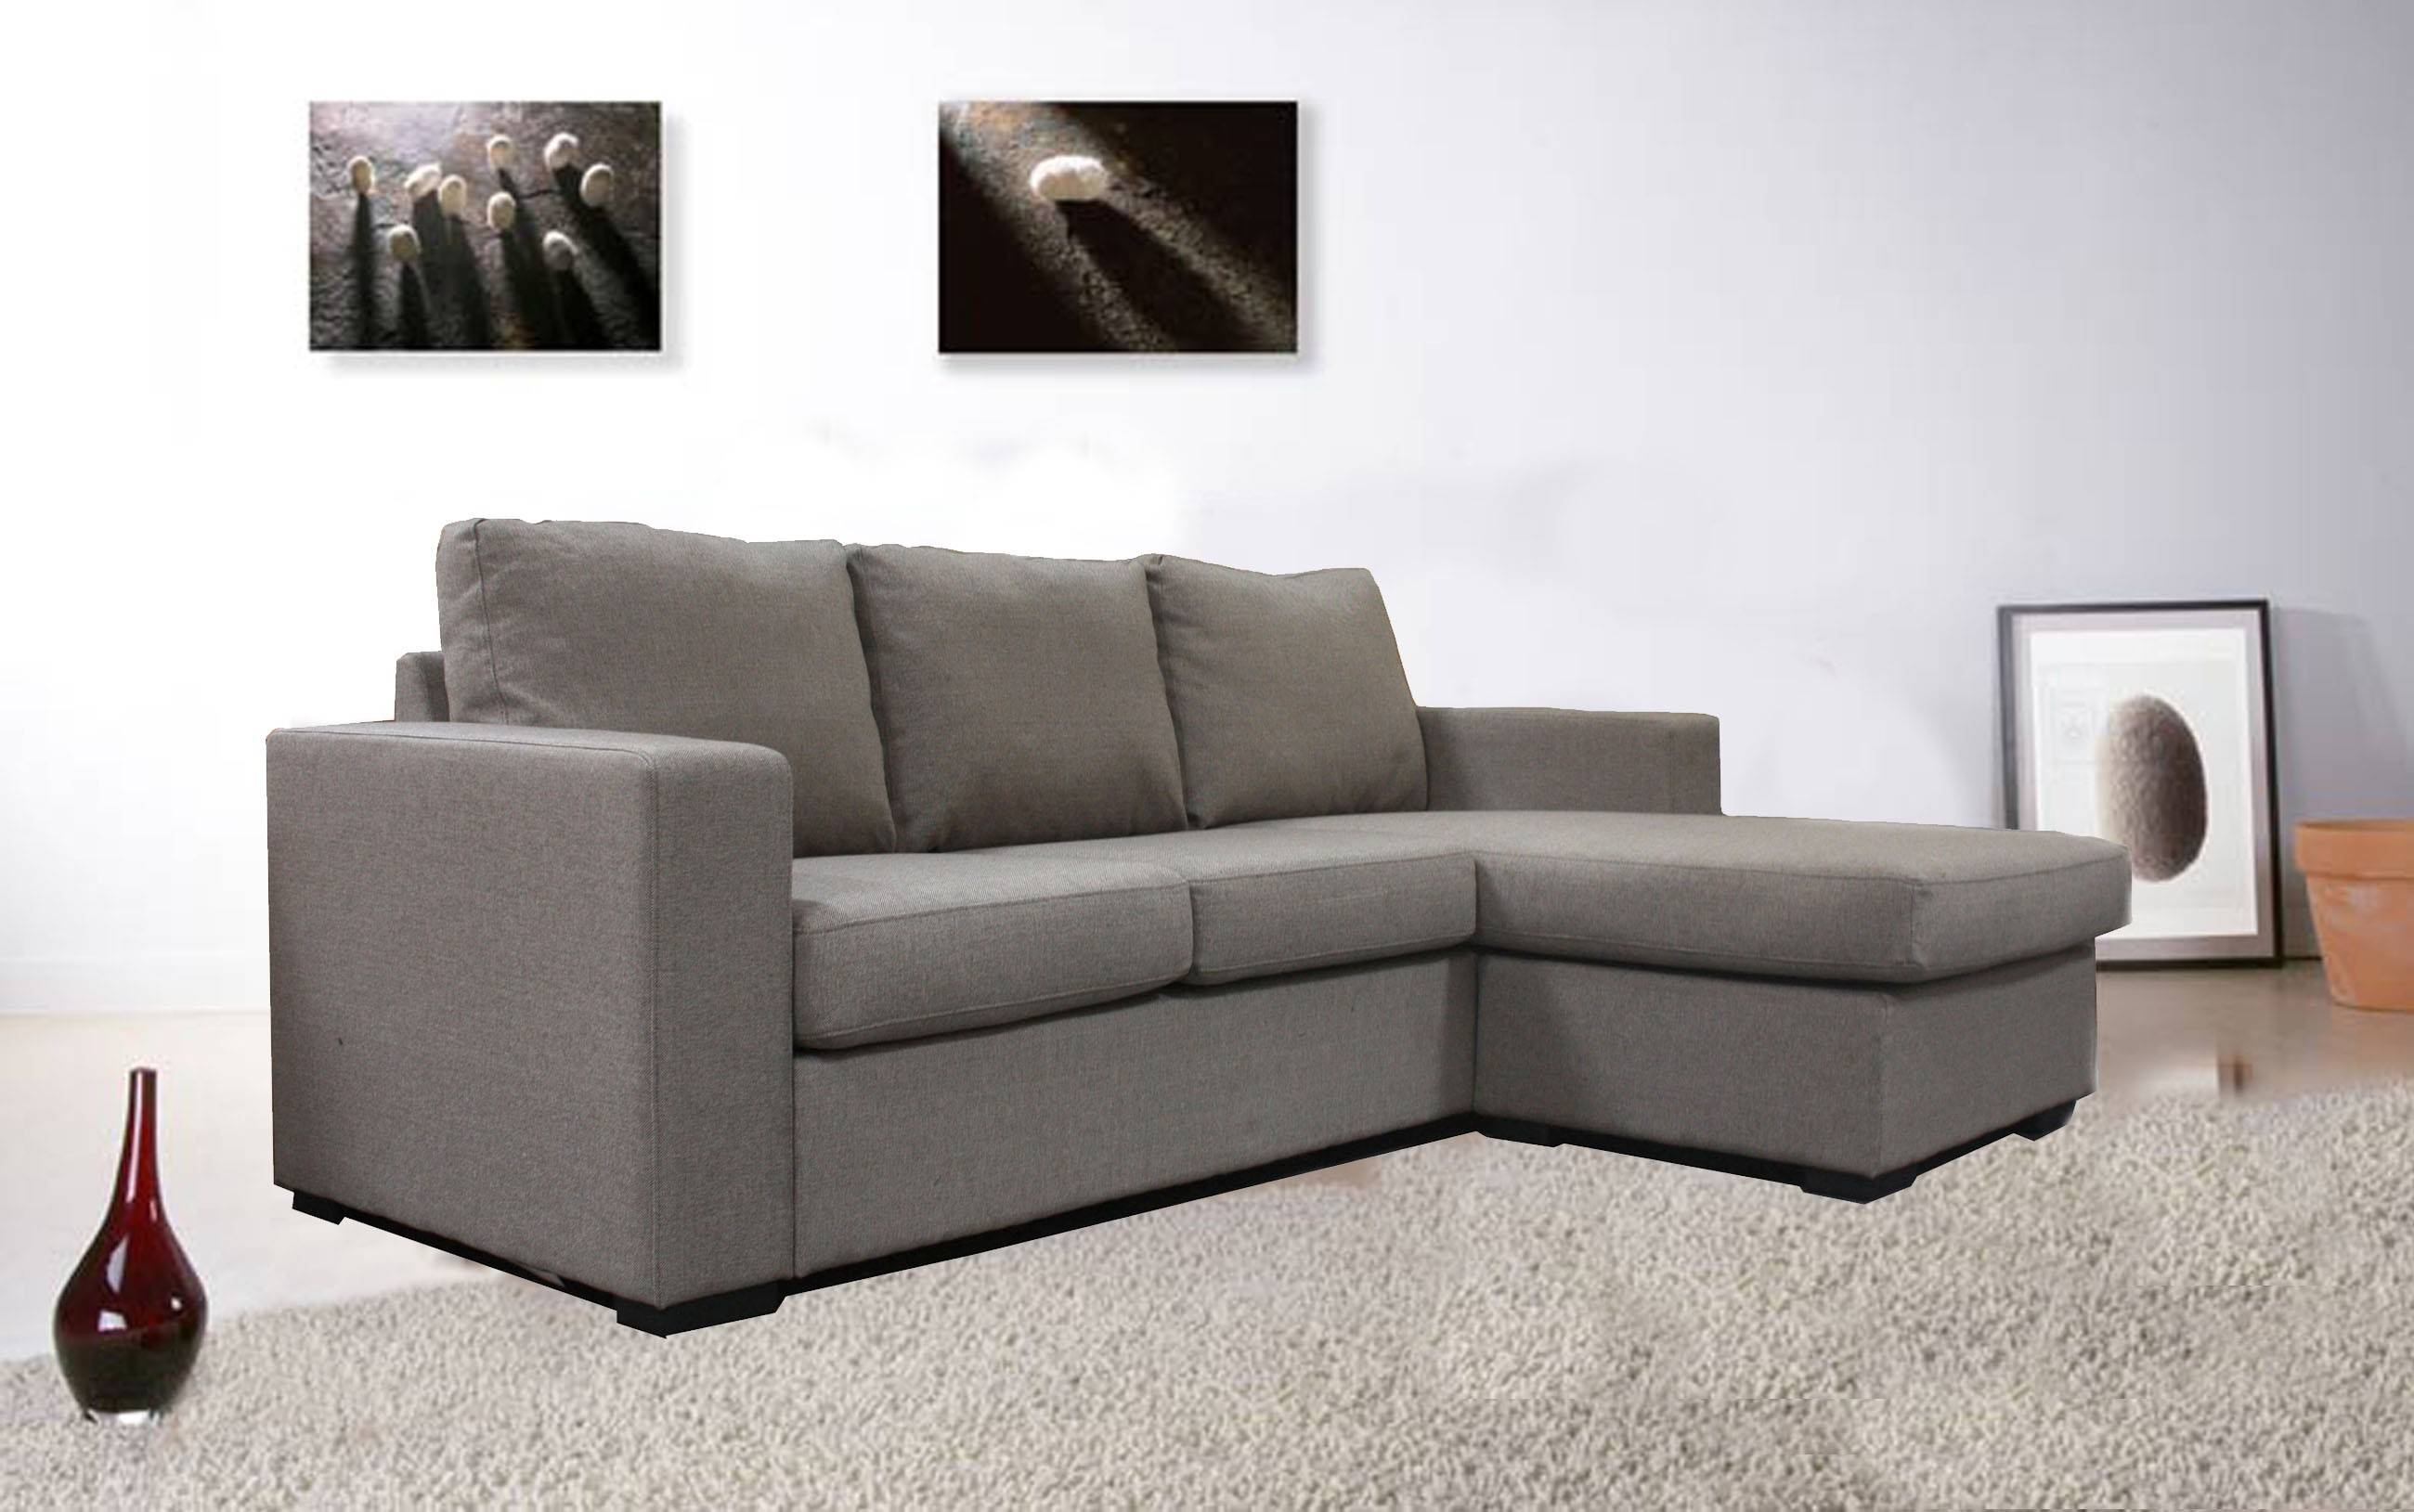 Furniture. Astounding Short Sectional Sofa That Cute And Loveable intended for Short Sectional Sofas (Image 7 of 15)